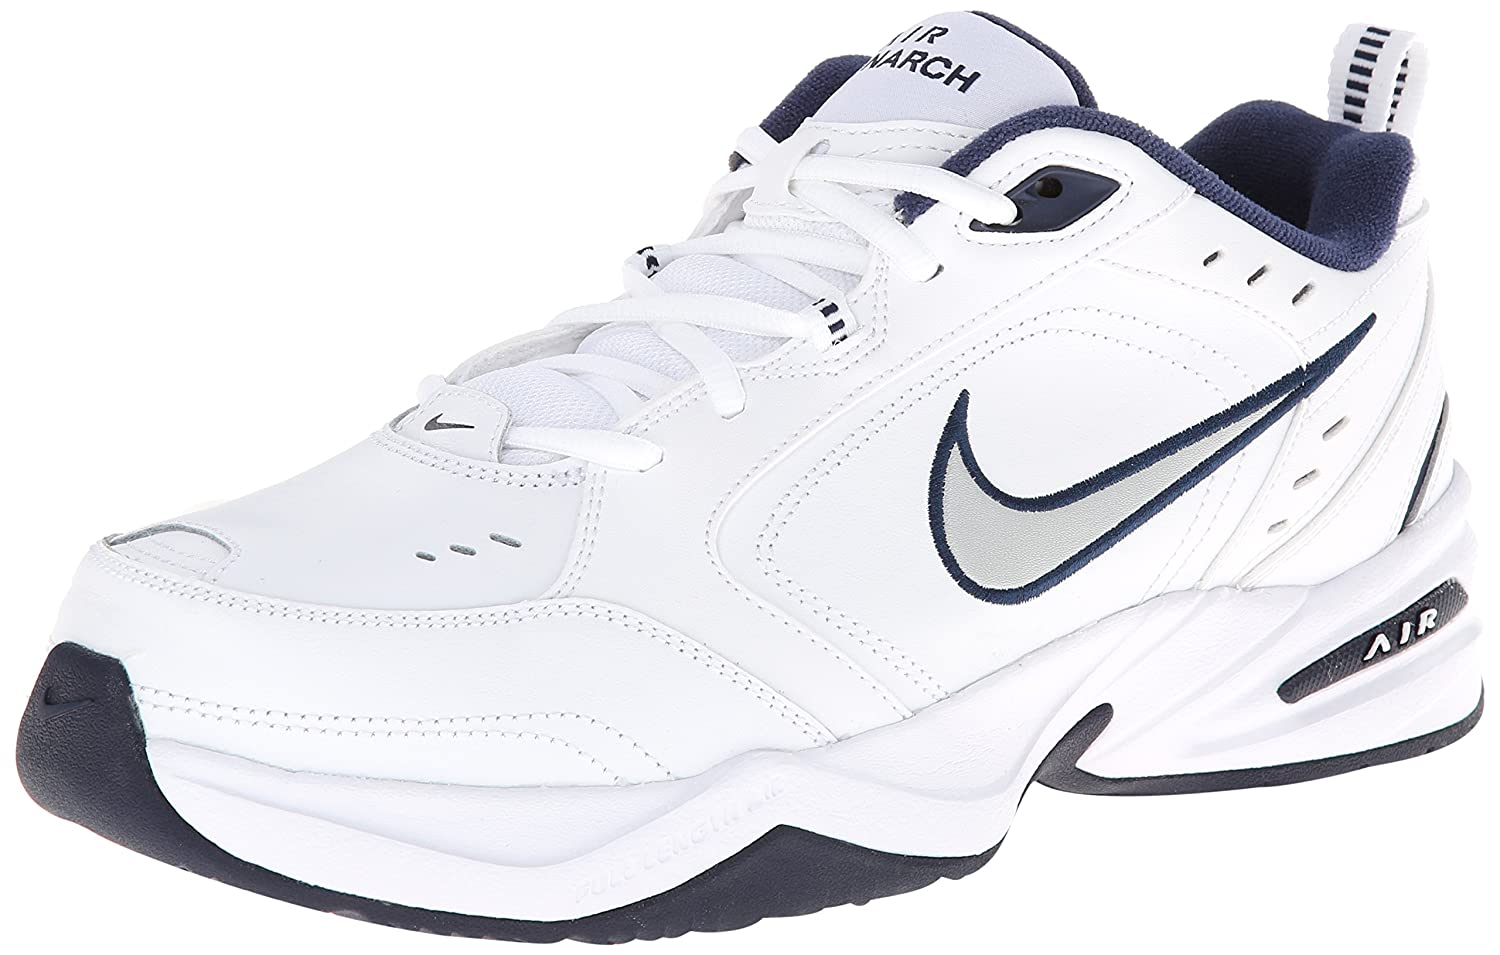 b760de66cc880 Nike Mens Air Monarch IV Running Shoe White/Black: Amazon.ca: Shoes ...